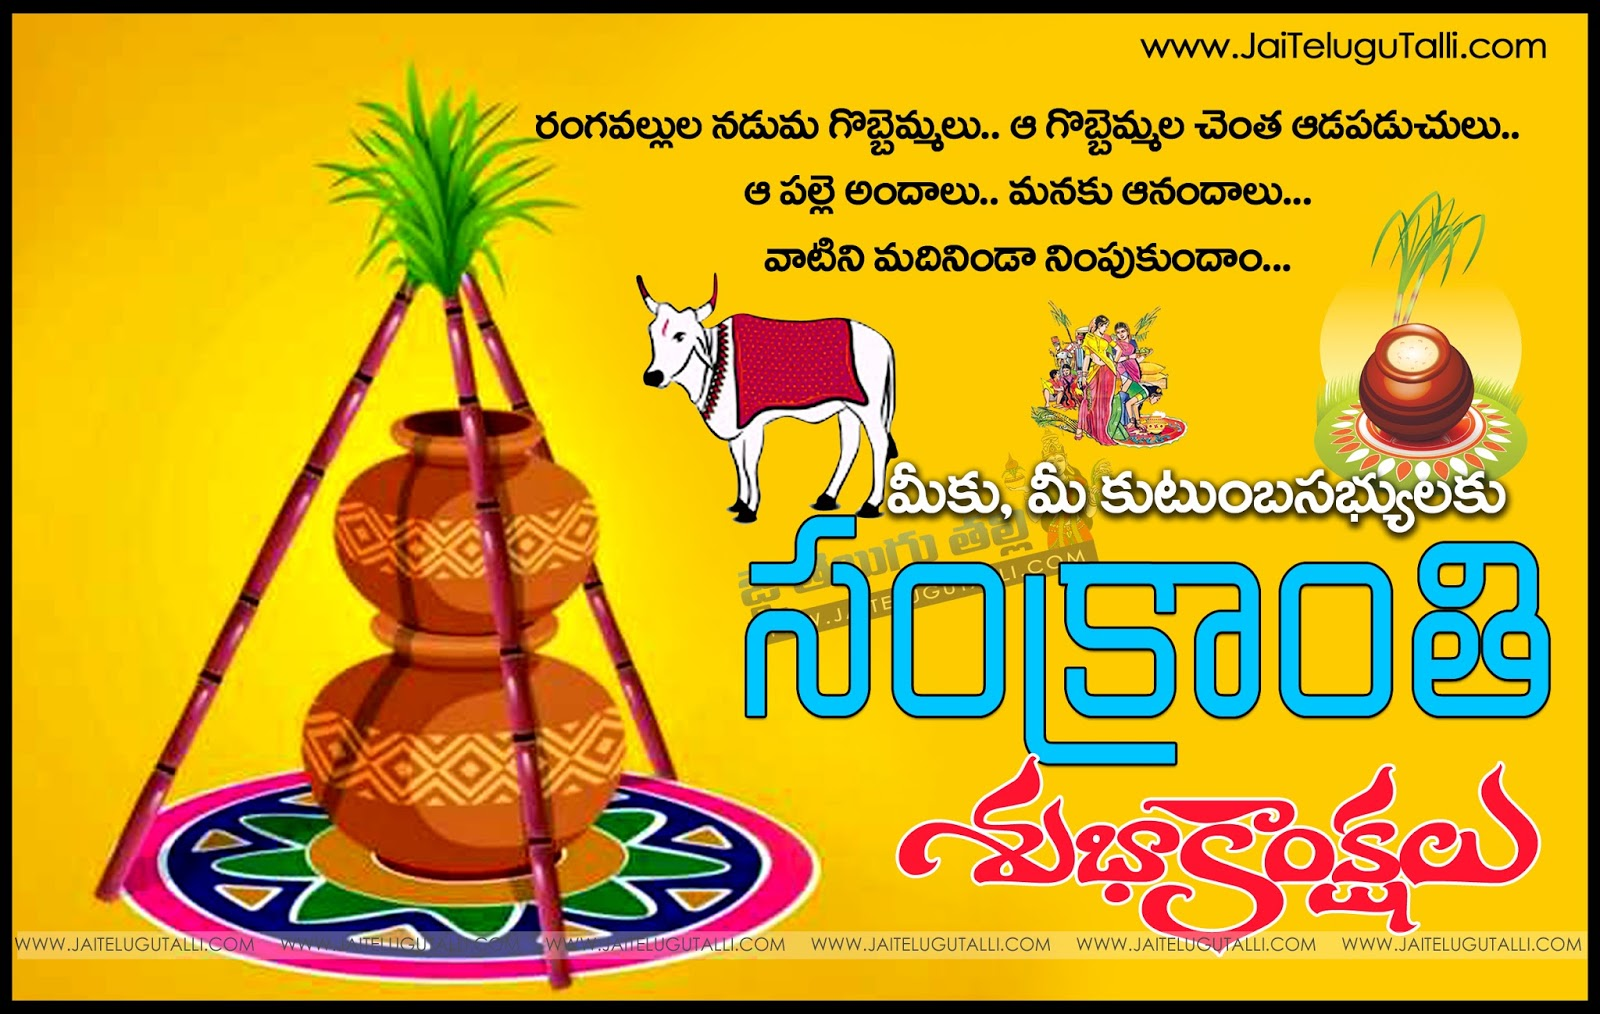 Makara sankranti wishes in telugu hd wallpapers happy sankranti sankranti wishes in telugu sankranti hd wallpapers sankranti m4hsunfo